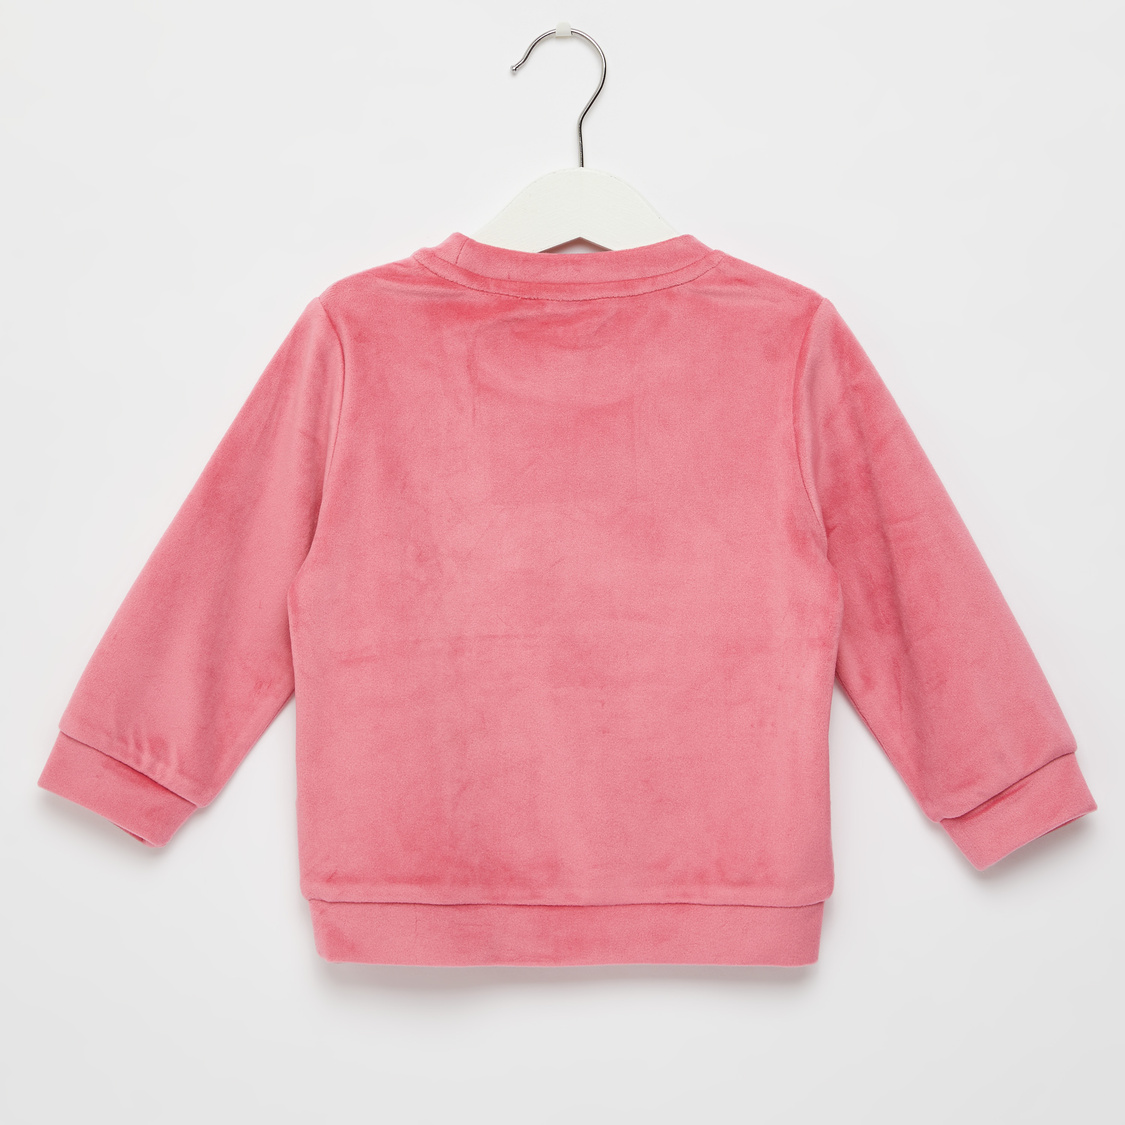 Unicorn Embroidered Sweat Top with Round Neck and Long Sleeves